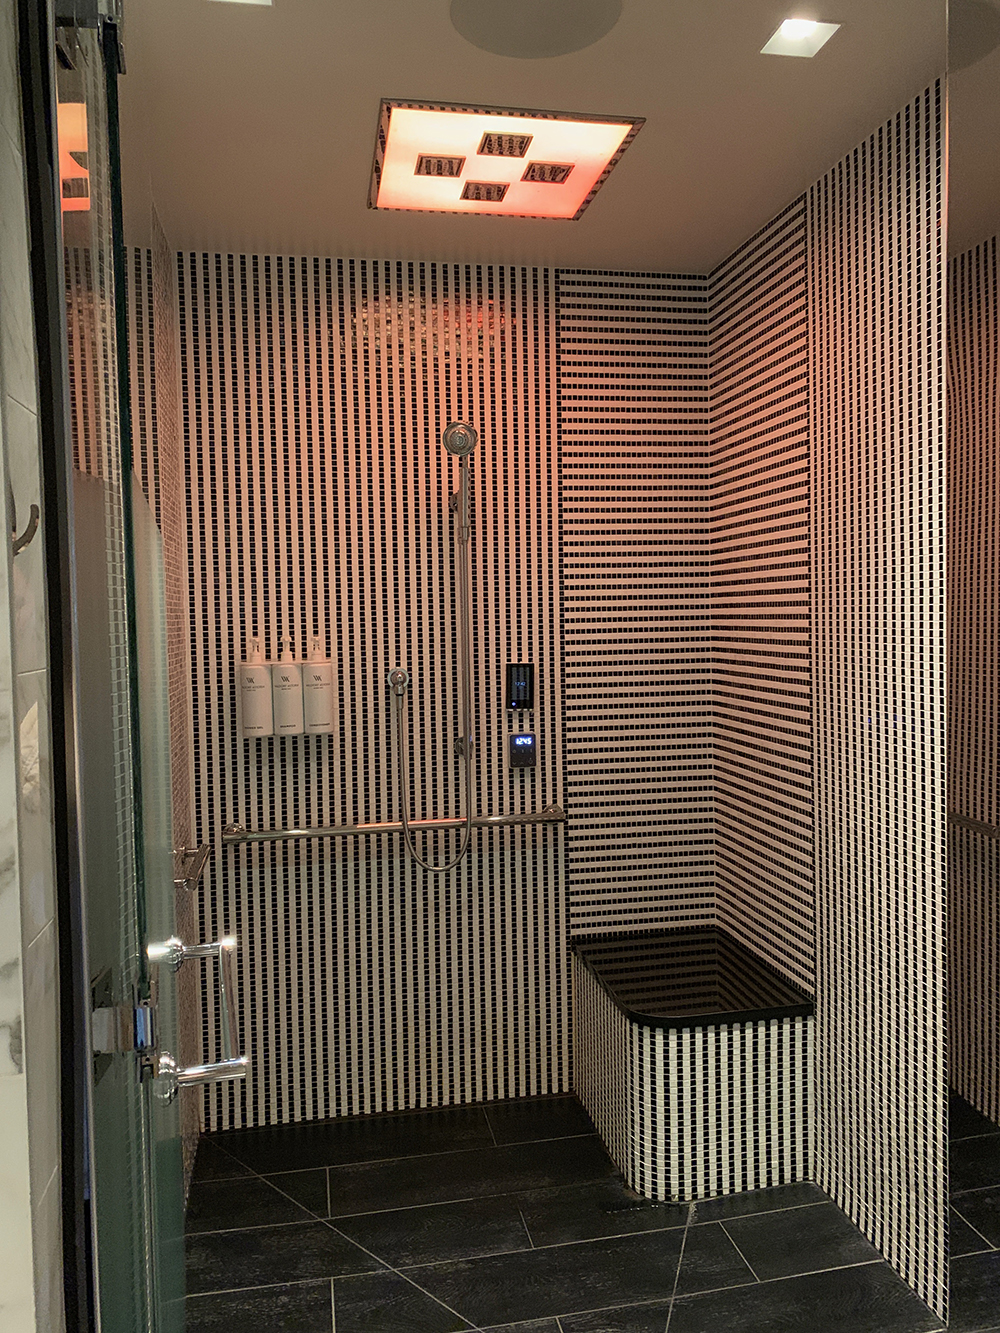 The experience shower includes light therapy.